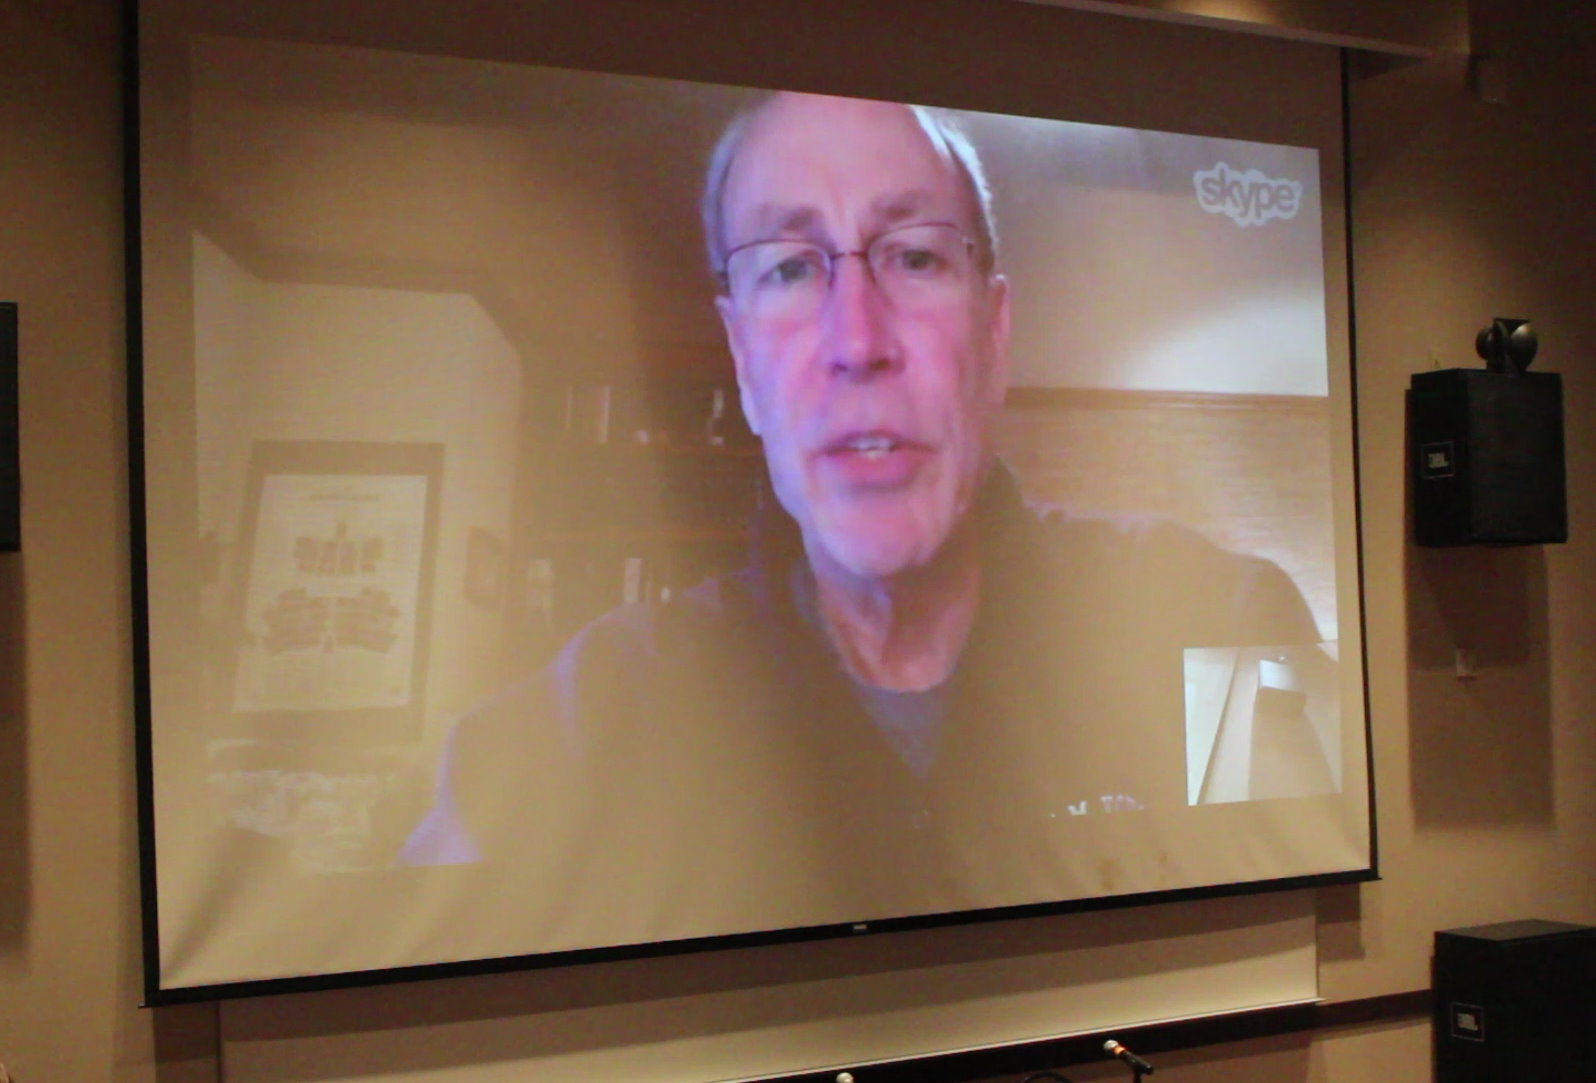 Utah Rep. Merrill Nelson, R-Grantsville, speaks to a group of about 30 people, including some fellow legislators, via Skype about a movement supported a call for a convention of states to amend the constitution with the purpose of limiting federal power. Nelson has introduced a resolution supporting the call of a convention to be addressed in the upcoming 2017 legislative session, St. George, Utah, Jan, 9, 2016 | Photo by Mori Kessler, St. George News